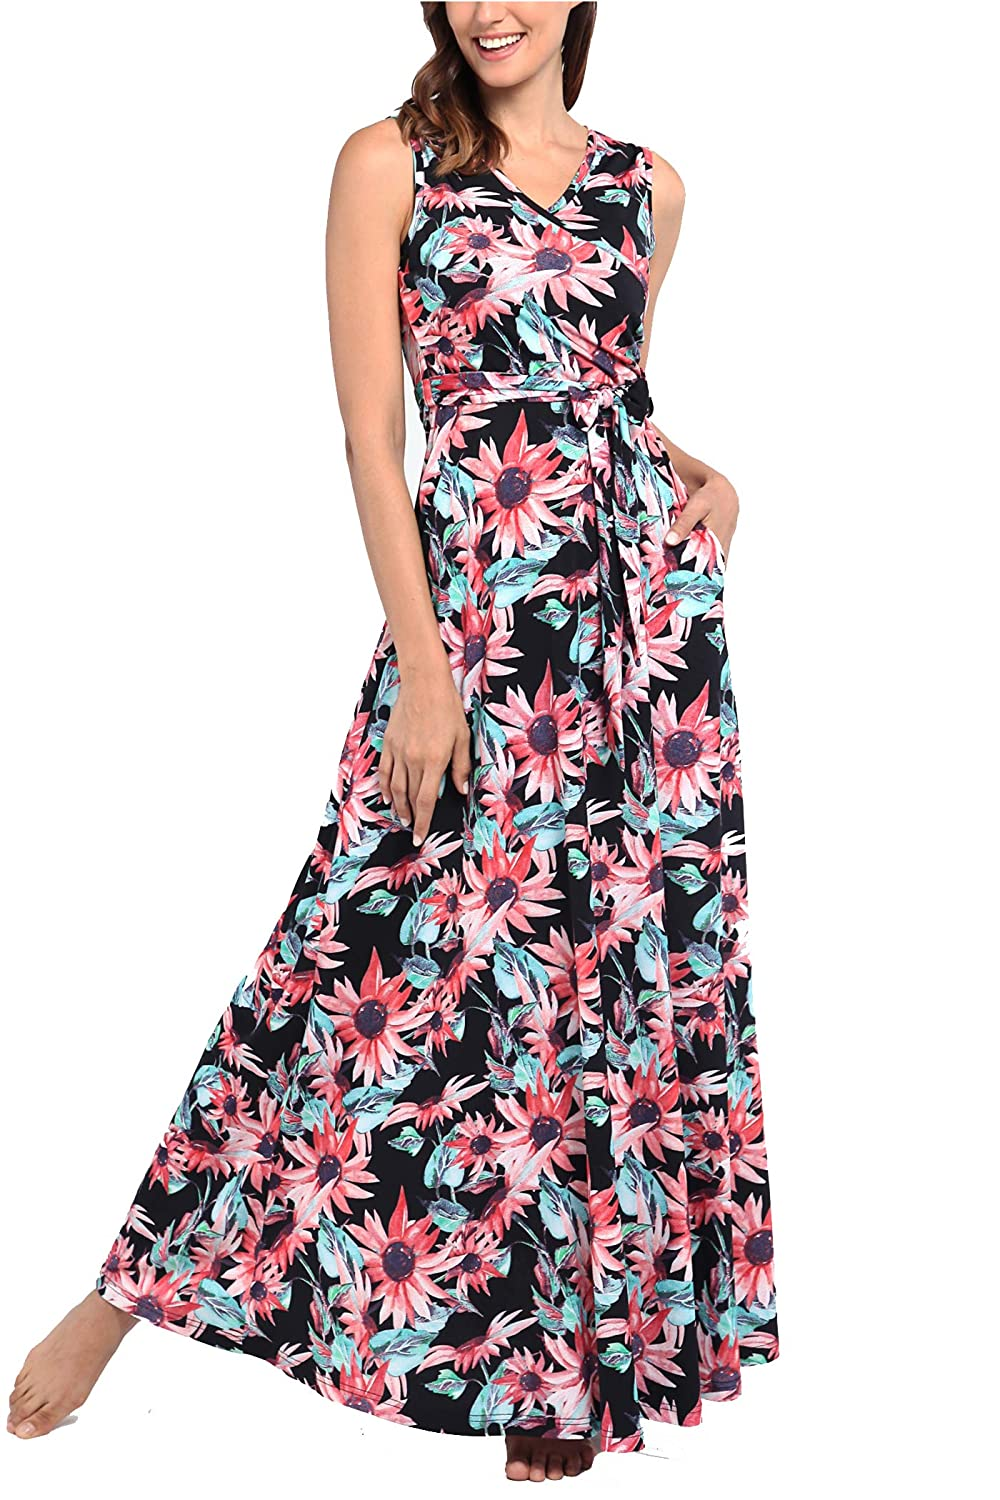 1f39e88de Comila Women's Summer V Neck Floral Maxi Dress Casual Long Dresses with  Pockets at Amazon Women's Clothing store